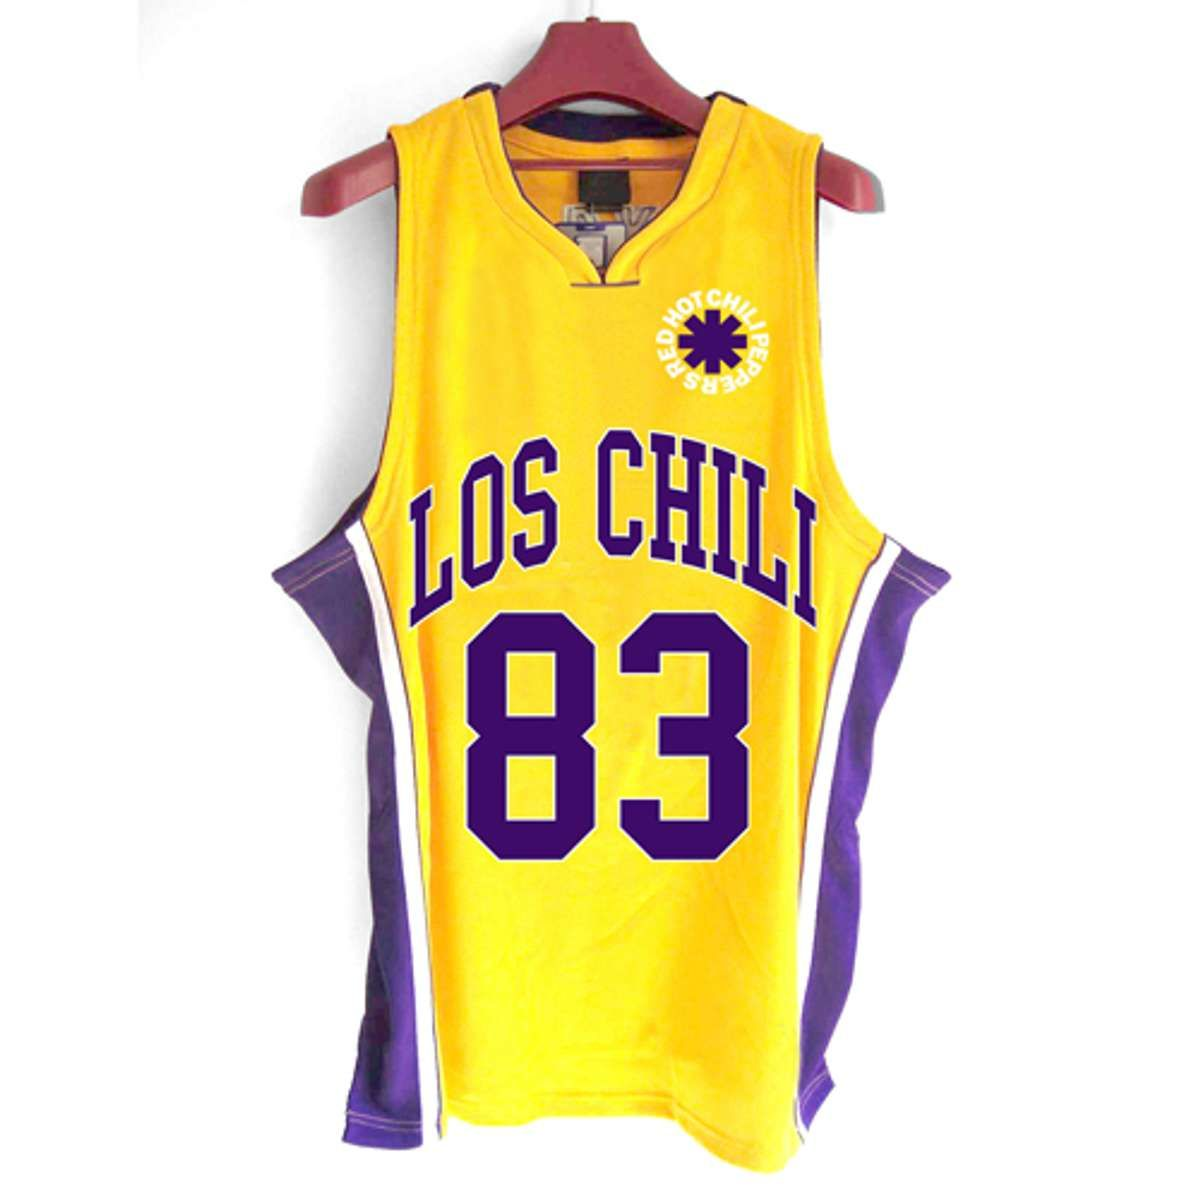 07b76be9fc5 Los Chili – Basketball Jersey. Official Red Hot Chili Peppers Merchandise